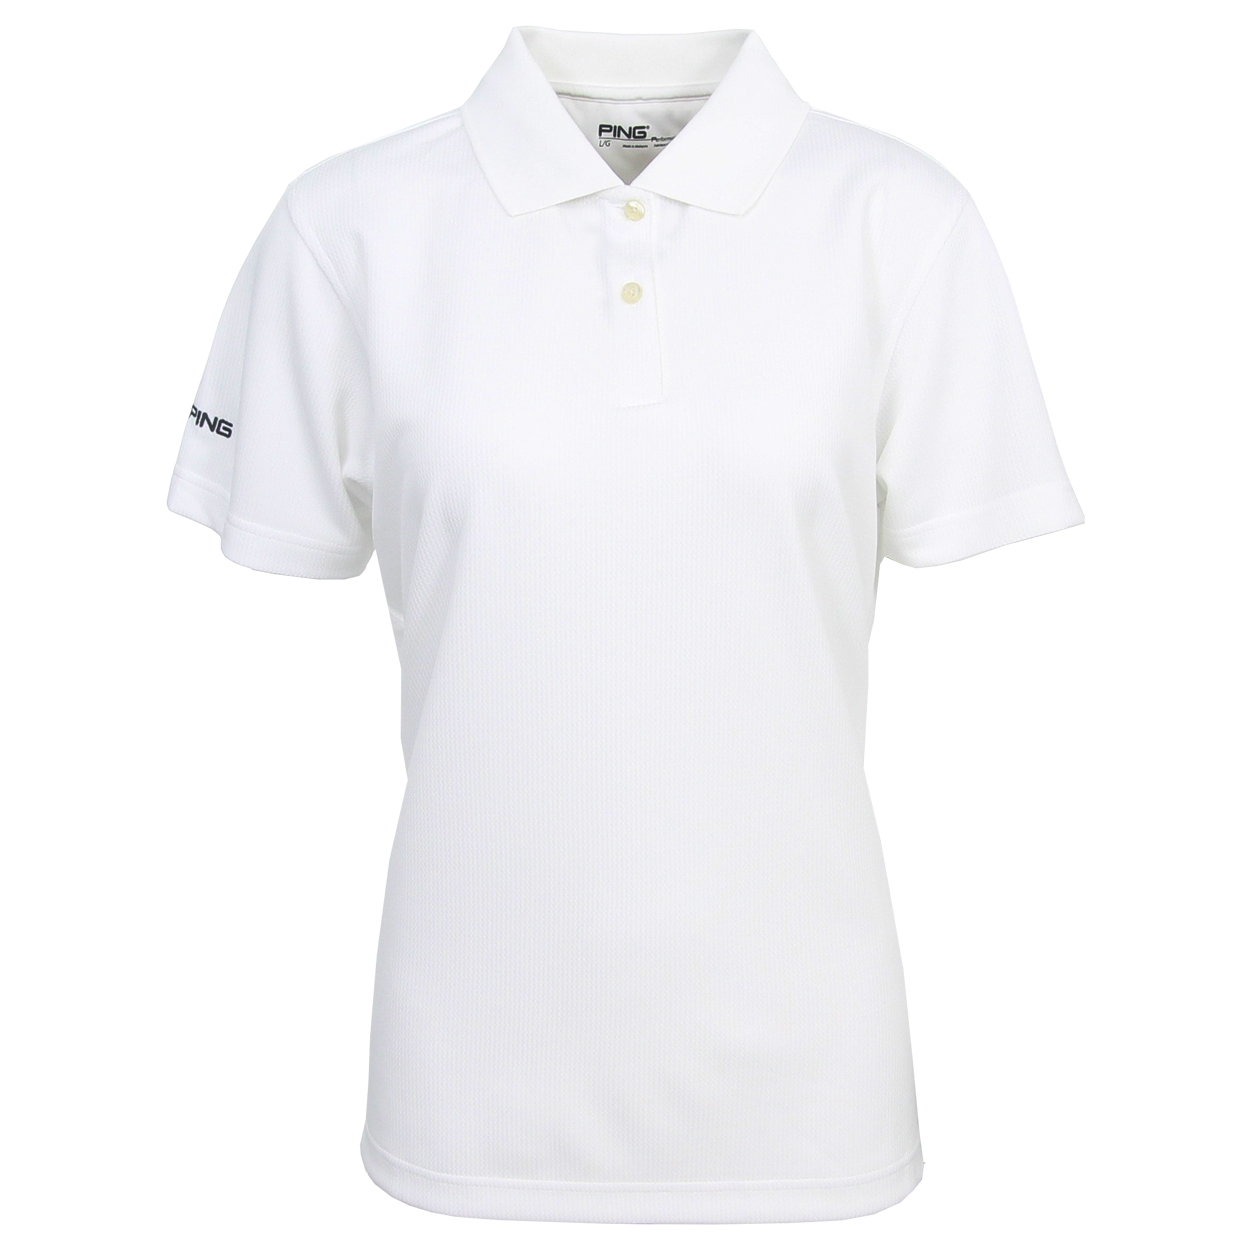 Ping golf women 39 s ace performance polo shirt brand new ebay for All polo shirt brands